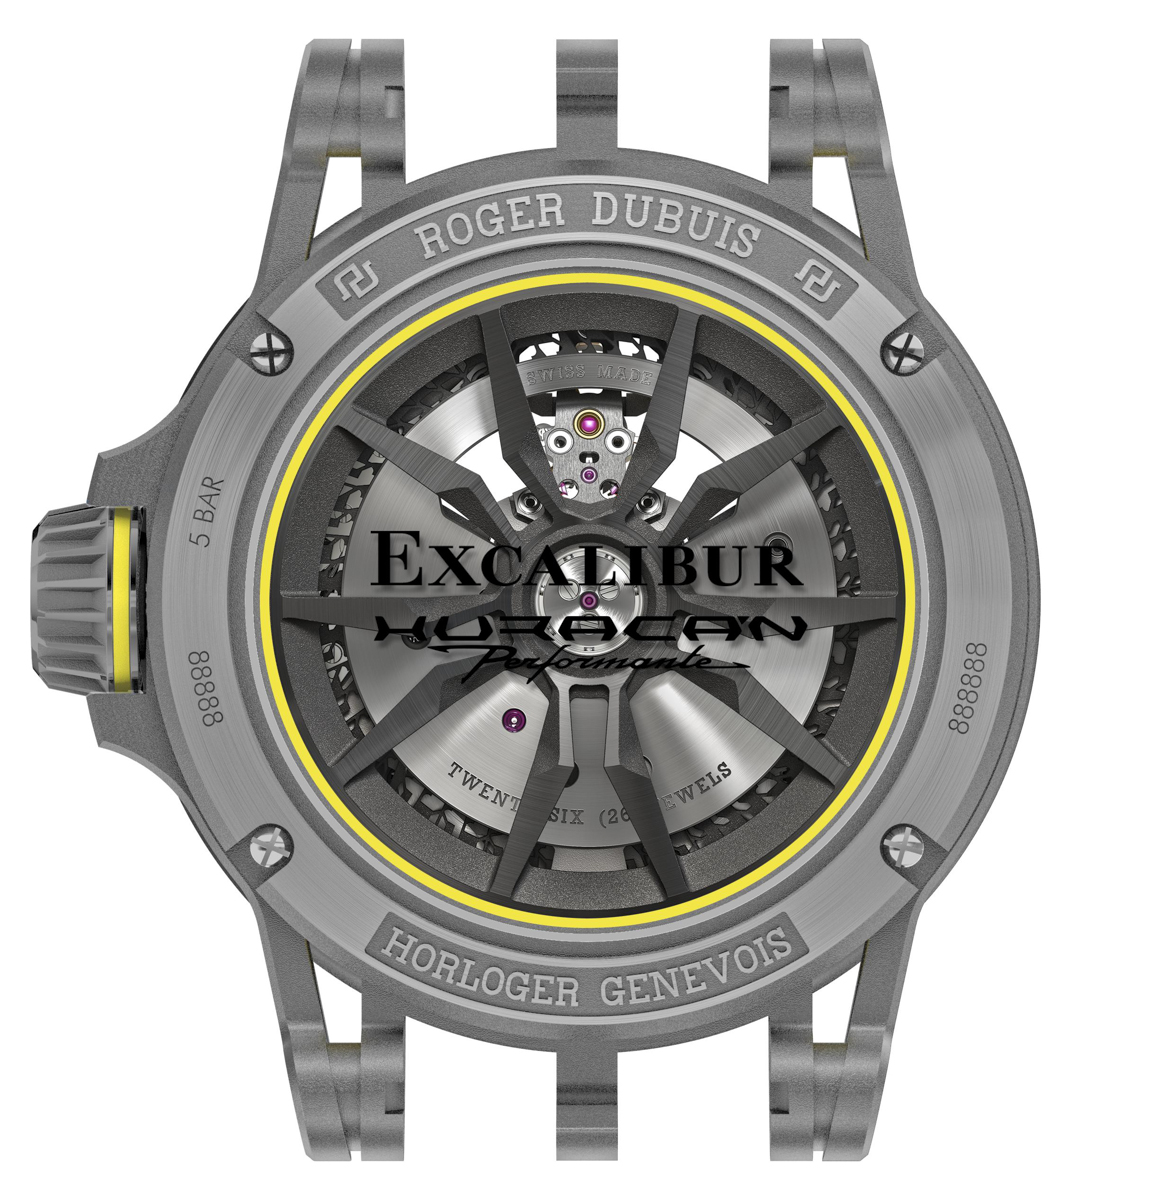 Roger Dubuis Excalibur Huracán Performante - Back